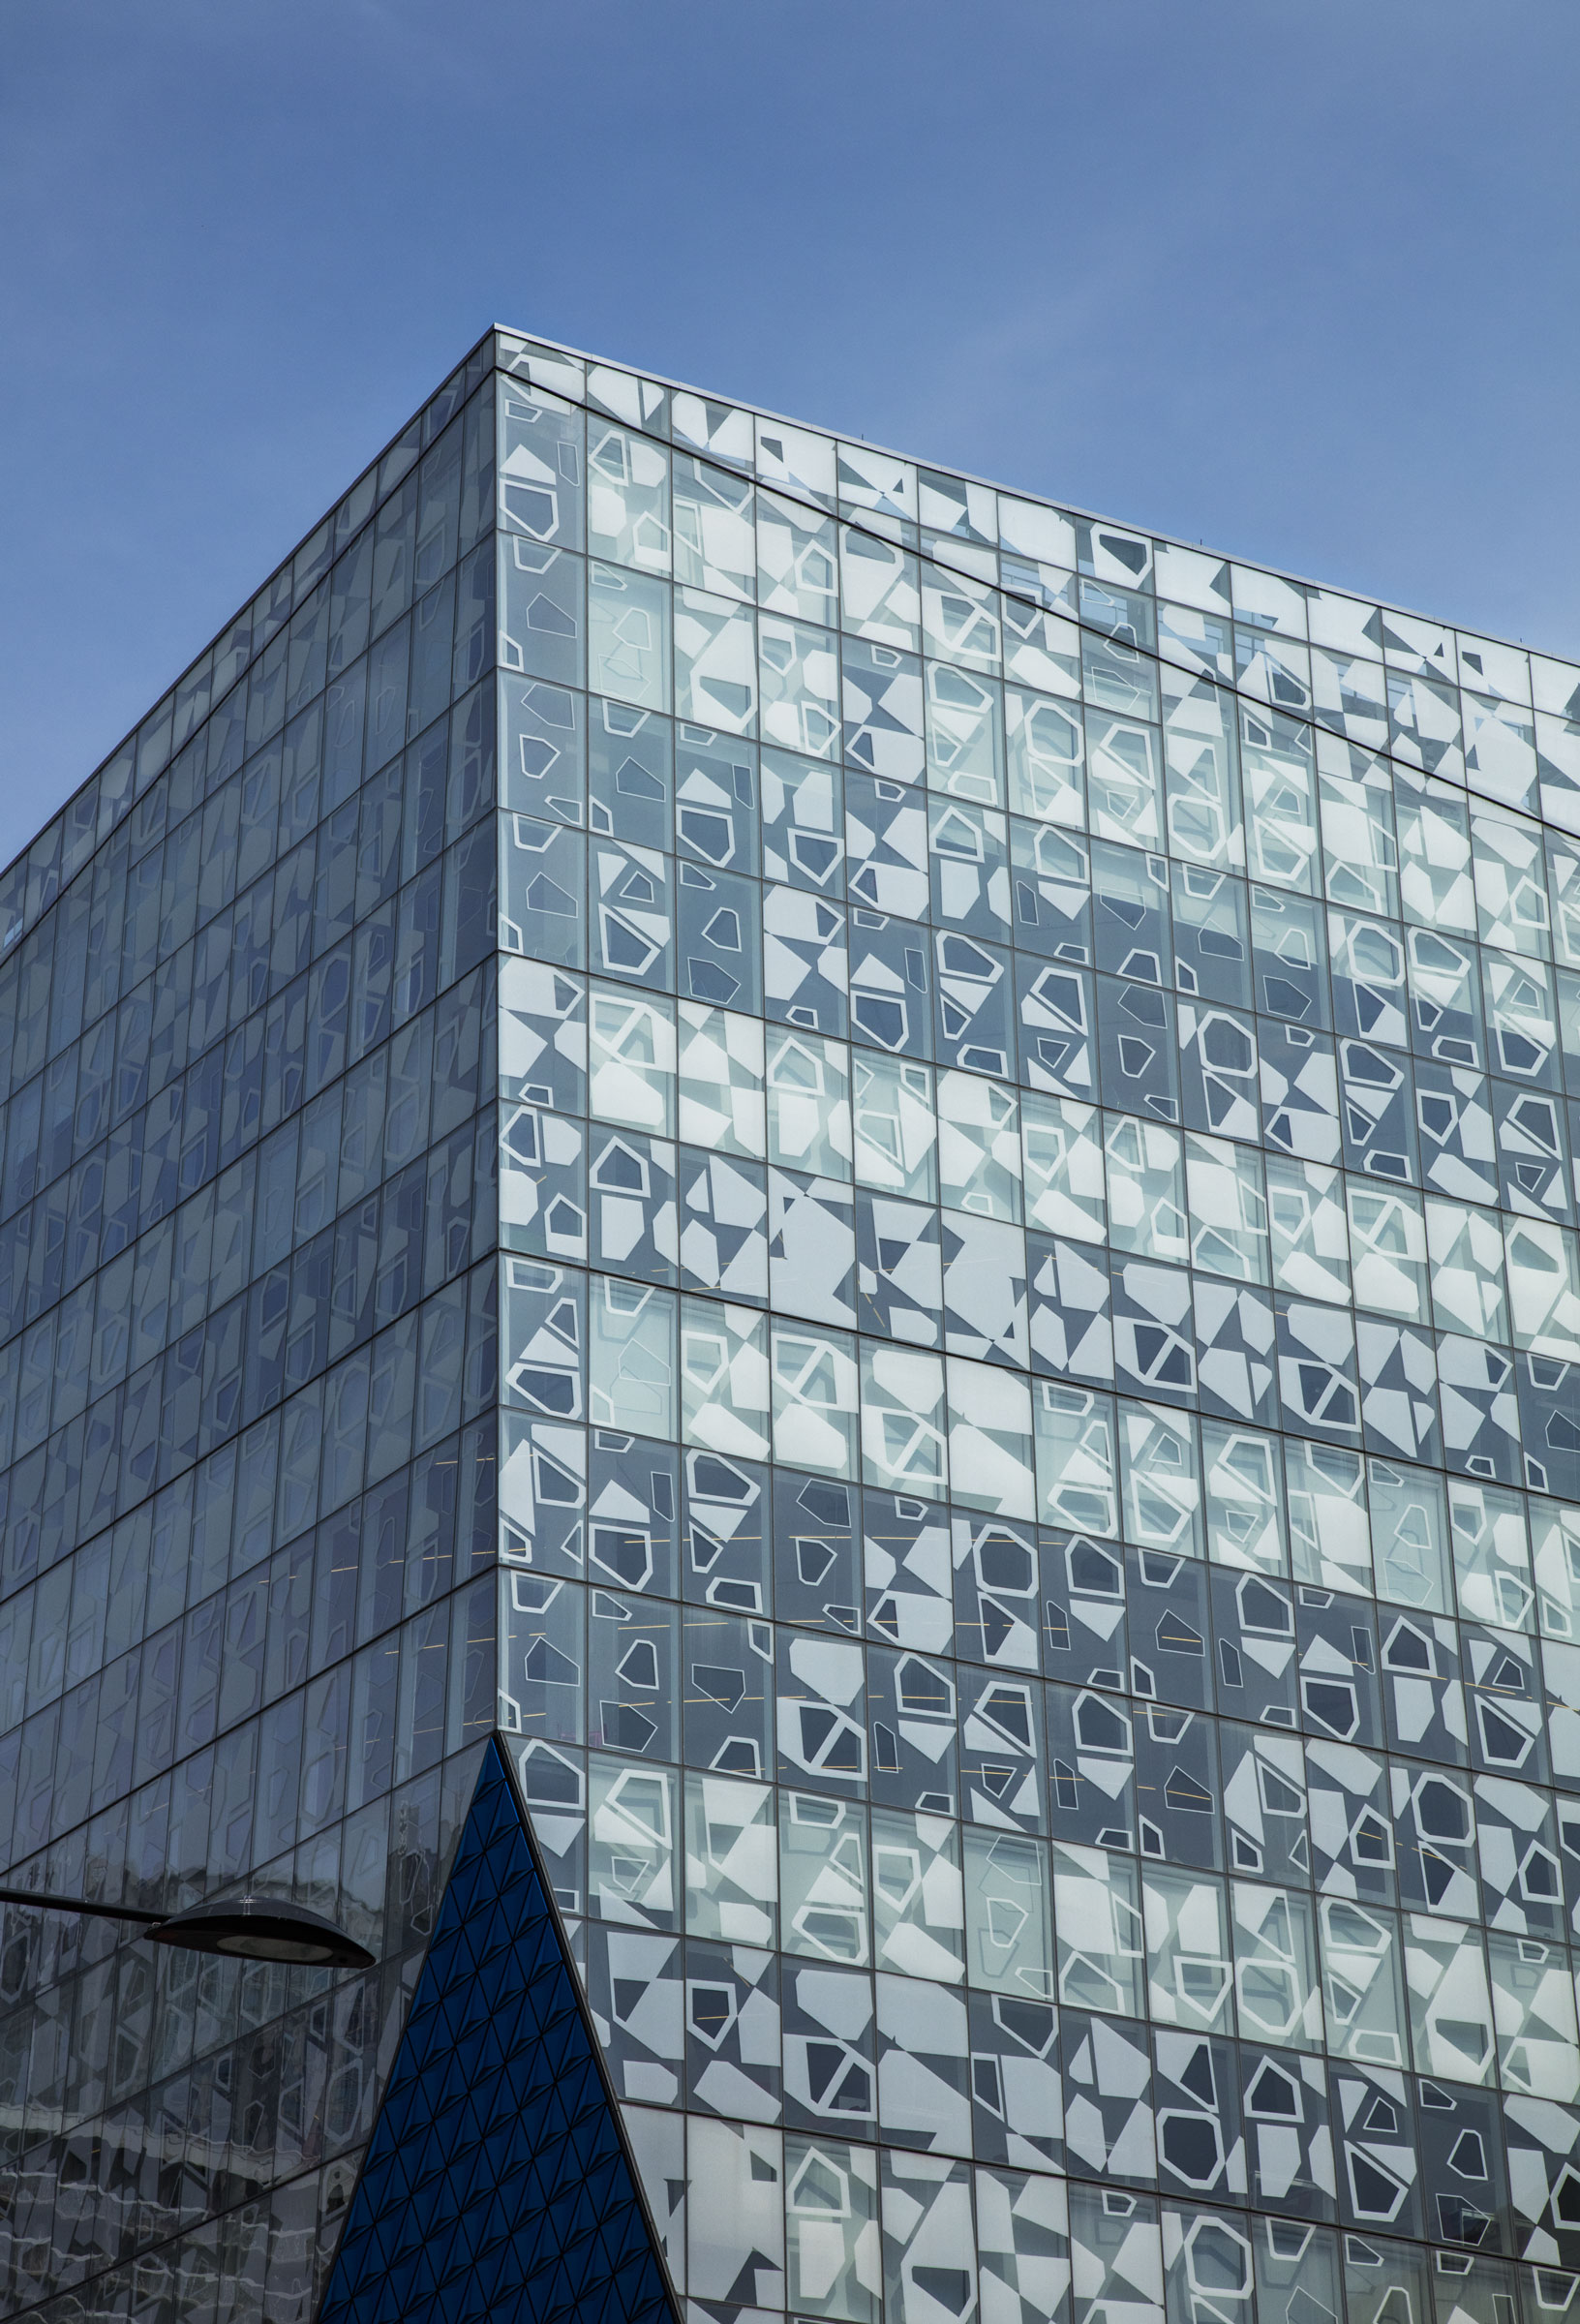 The patterns etched on windows of a Ryerson University building a in Toronto were employed for aesthetic reasons, but act as collision deterrents. Richard Barnes